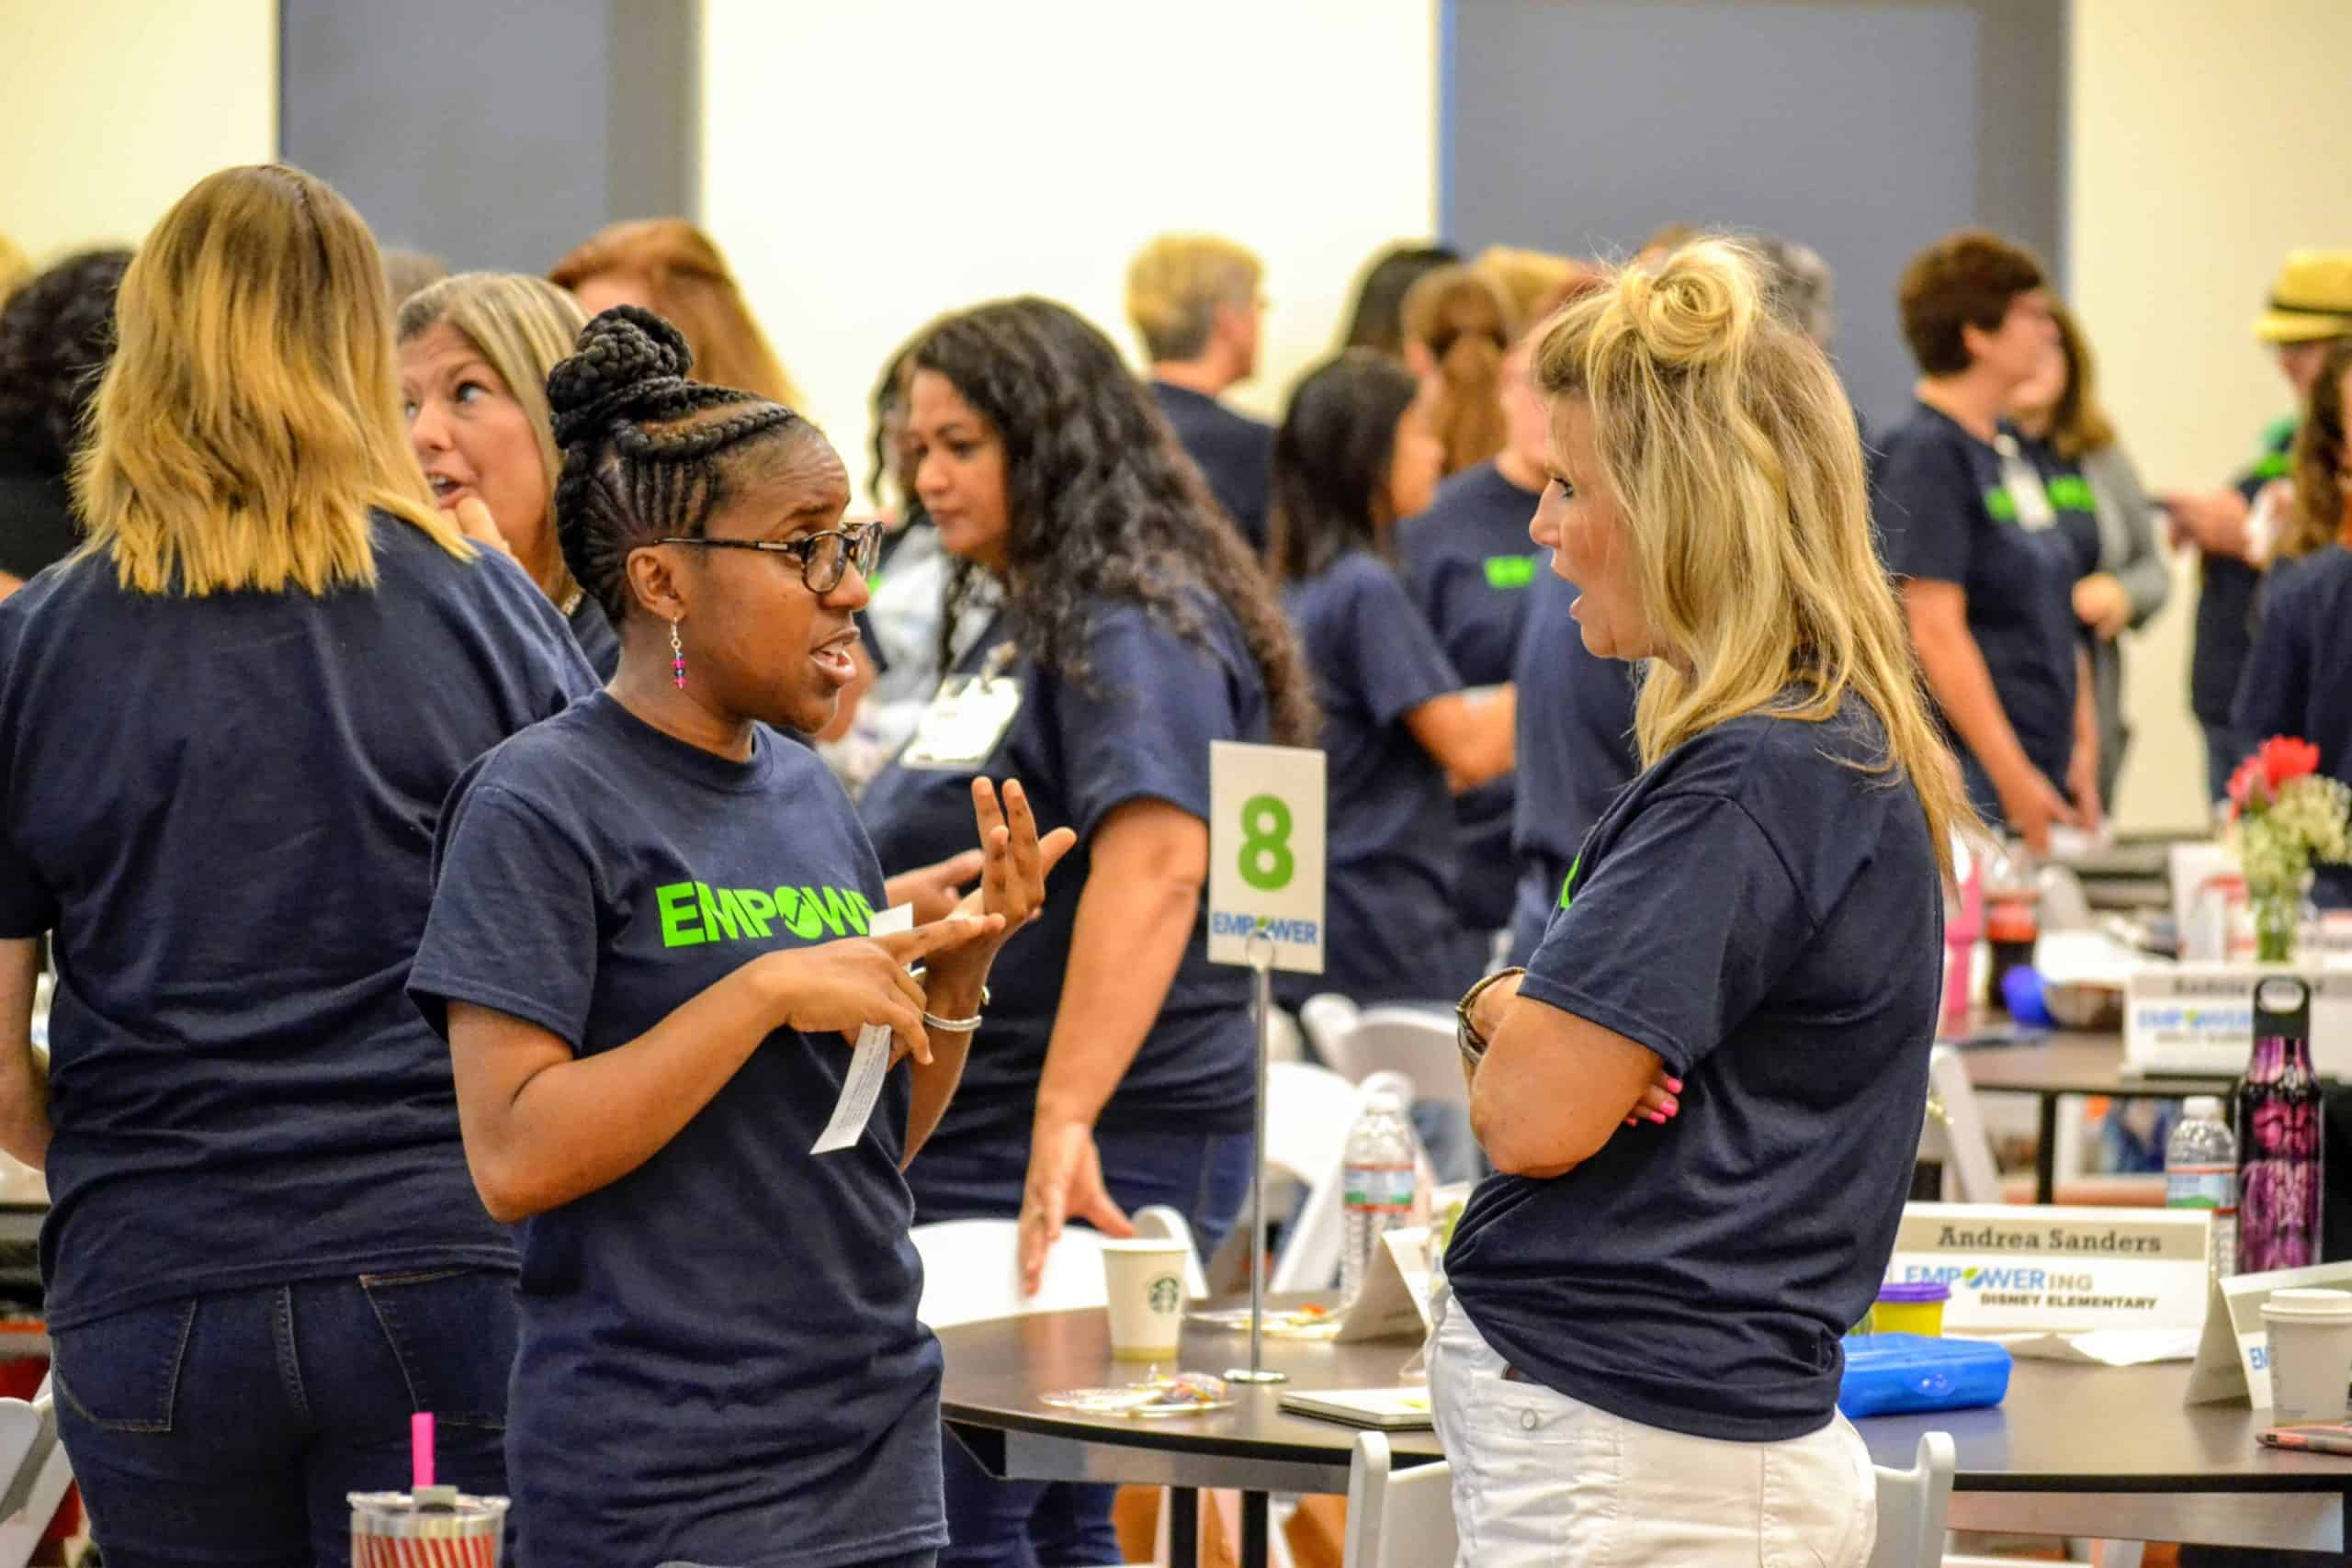 Two Tulsa Empower educators chat during a workshop